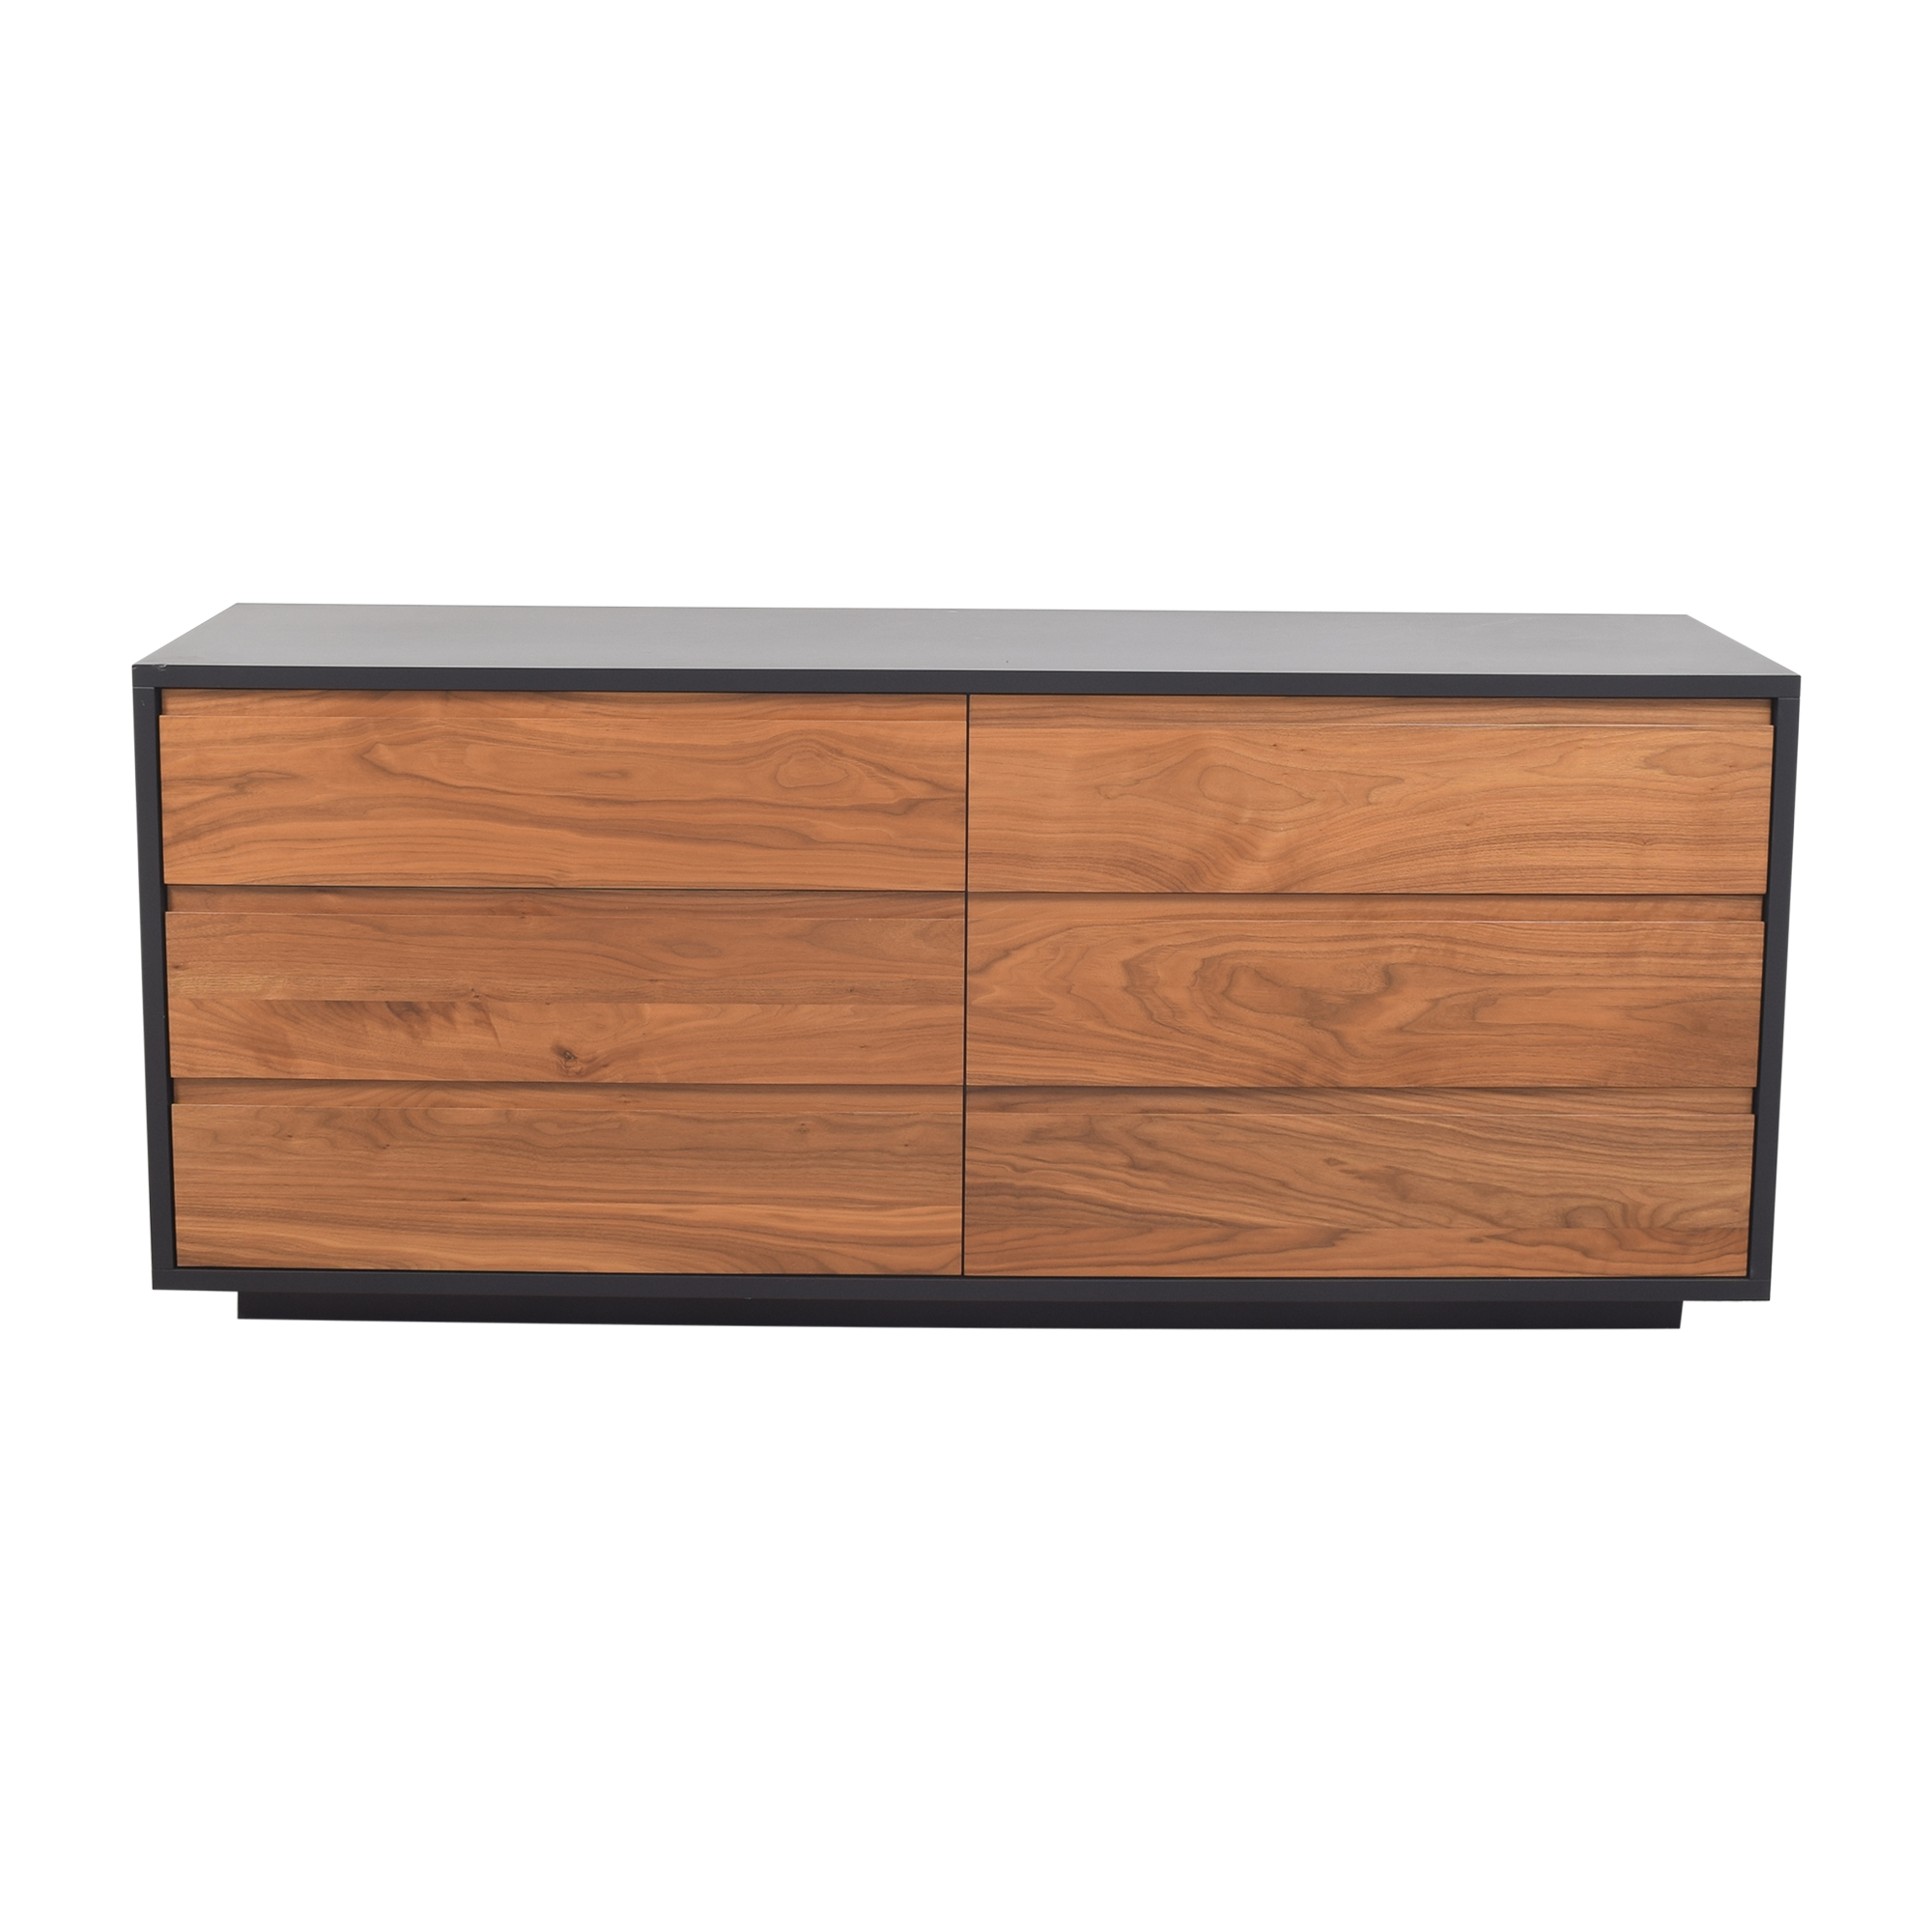 Room & Board Room & Board Six Drawer Double Dresser ma